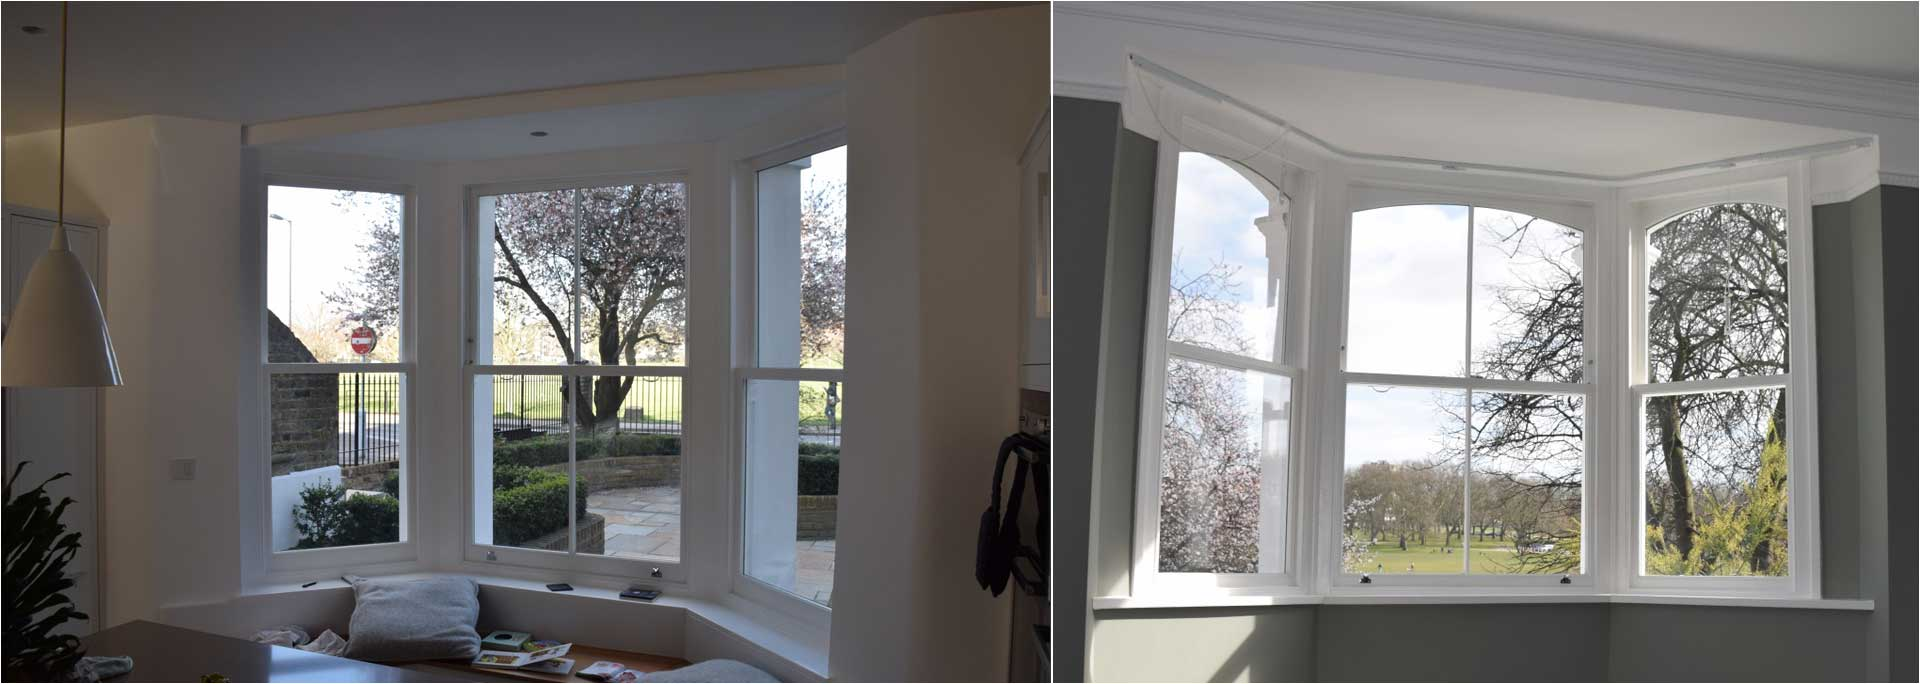 new sash windows sash window replacement in london. Black Bedroom Furniture Sets. Home Design Ideas